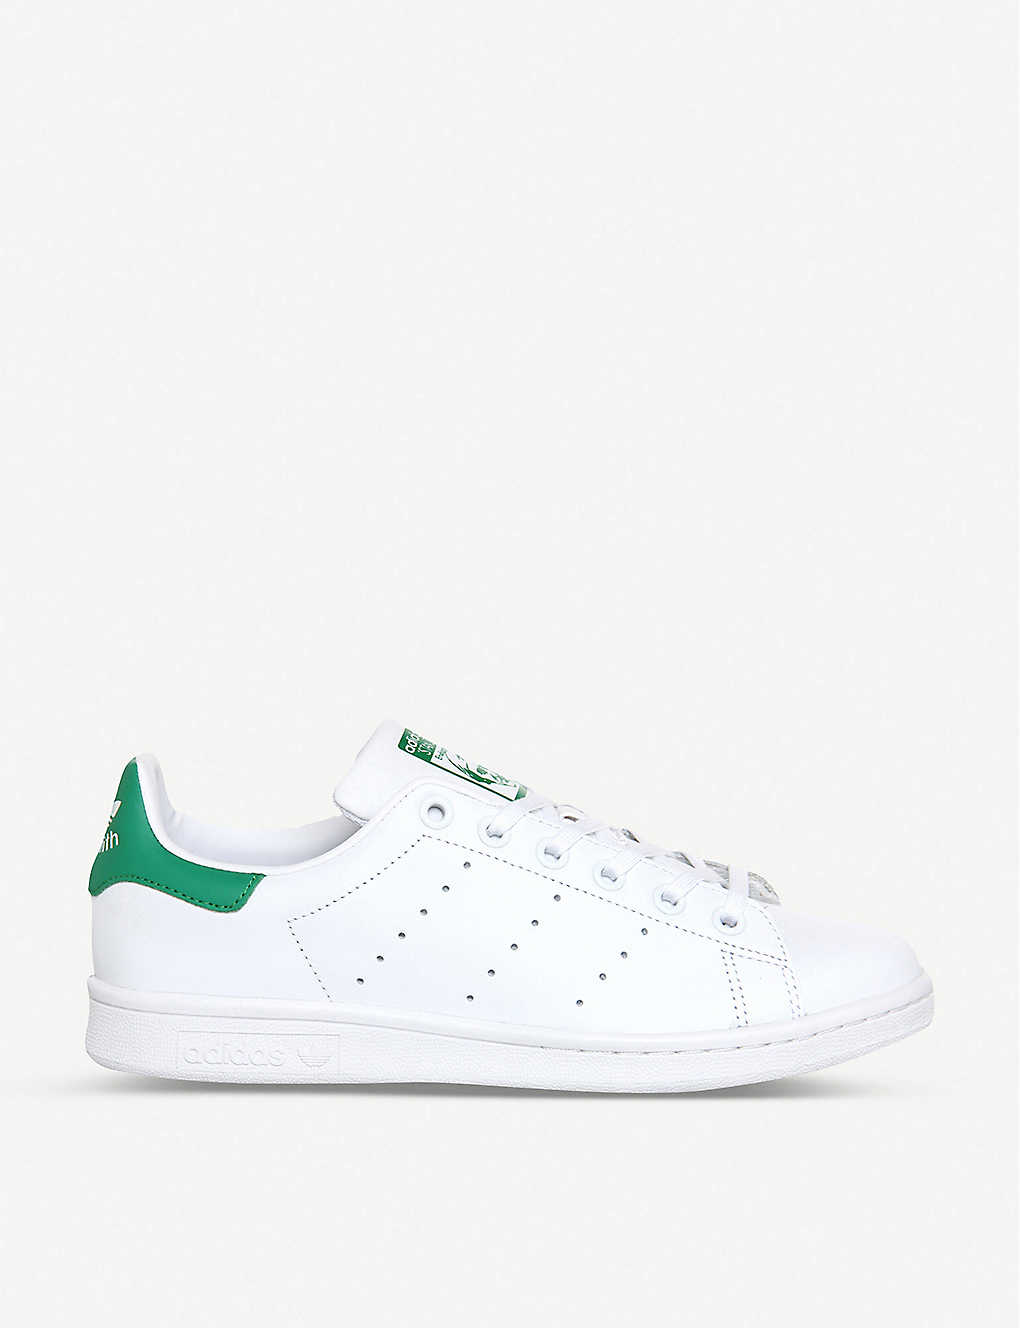 ADIDAS - Stan Smith leather trainers  cdf28dc60